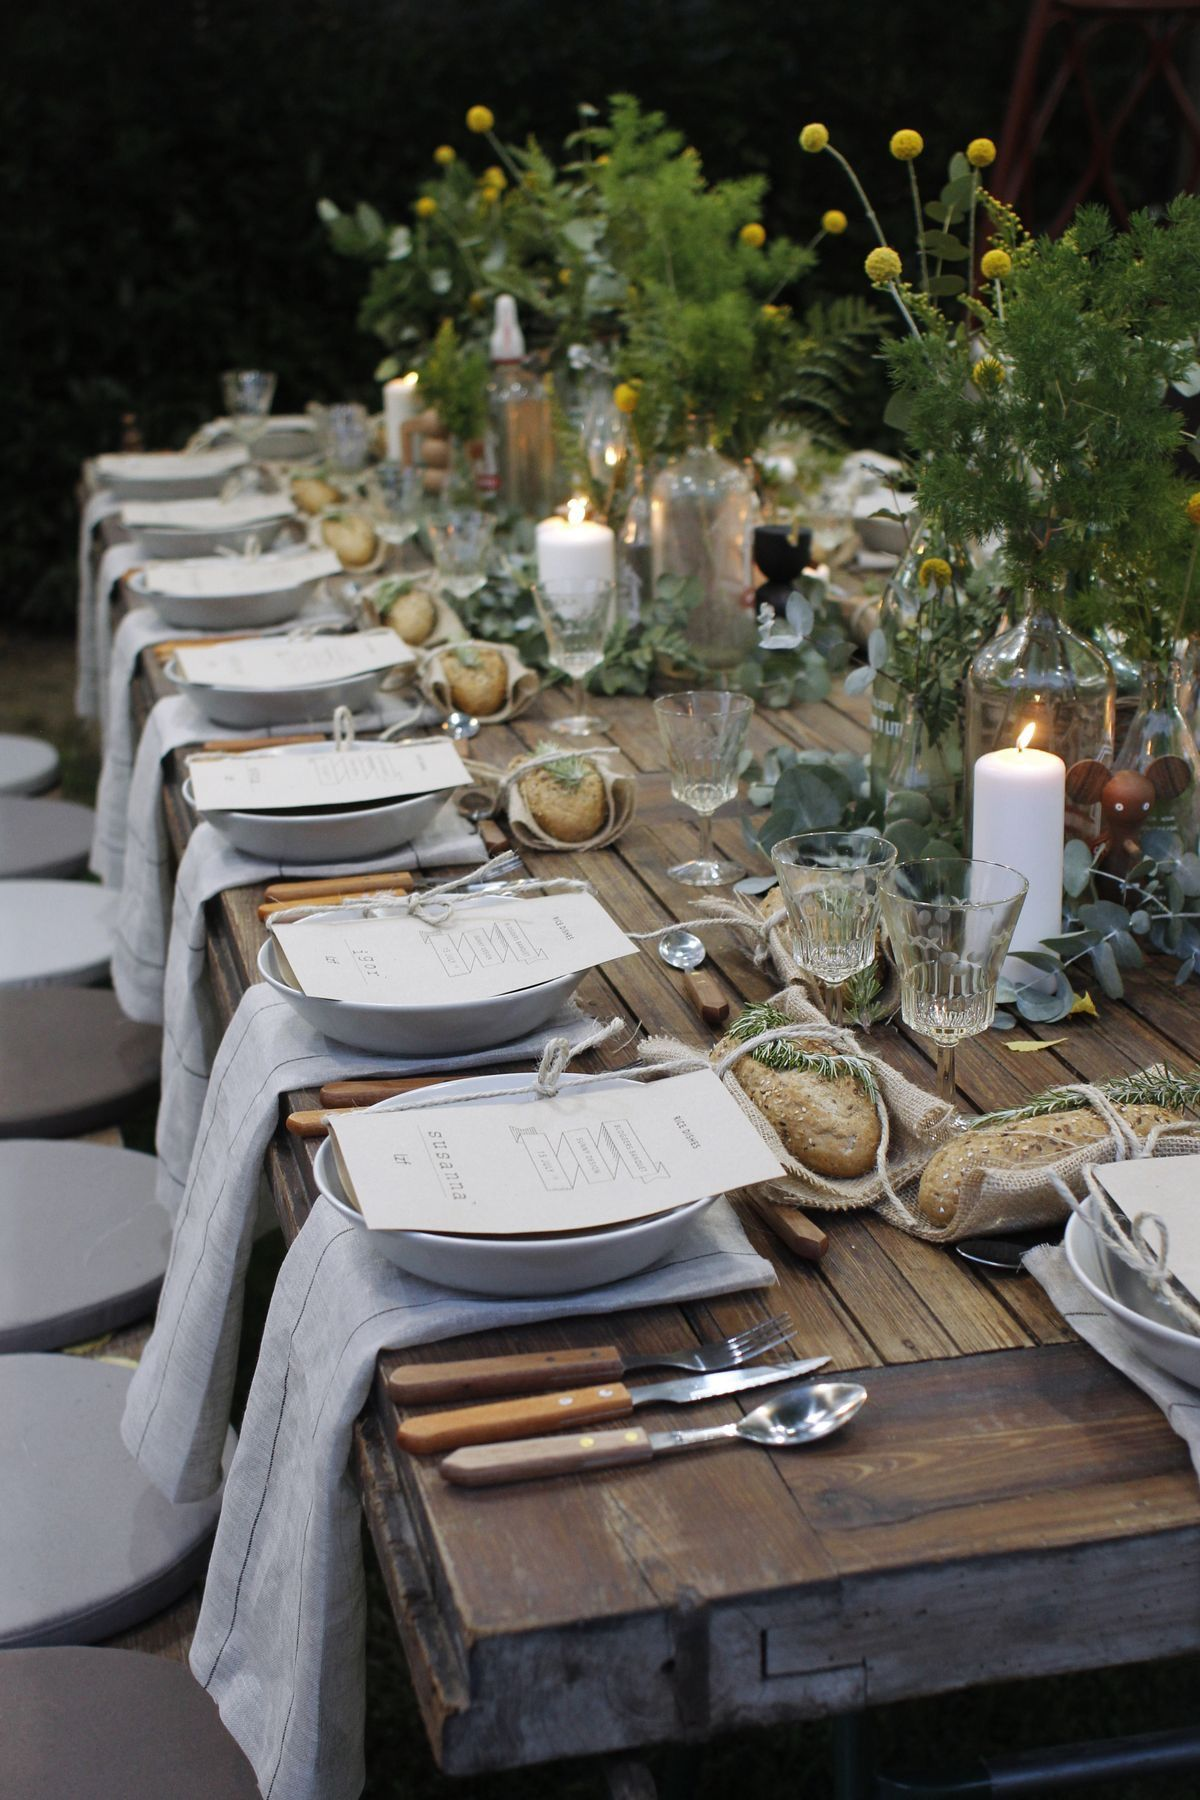 How To Have A Rustic Wedding Inspiration And Ideas For Getting